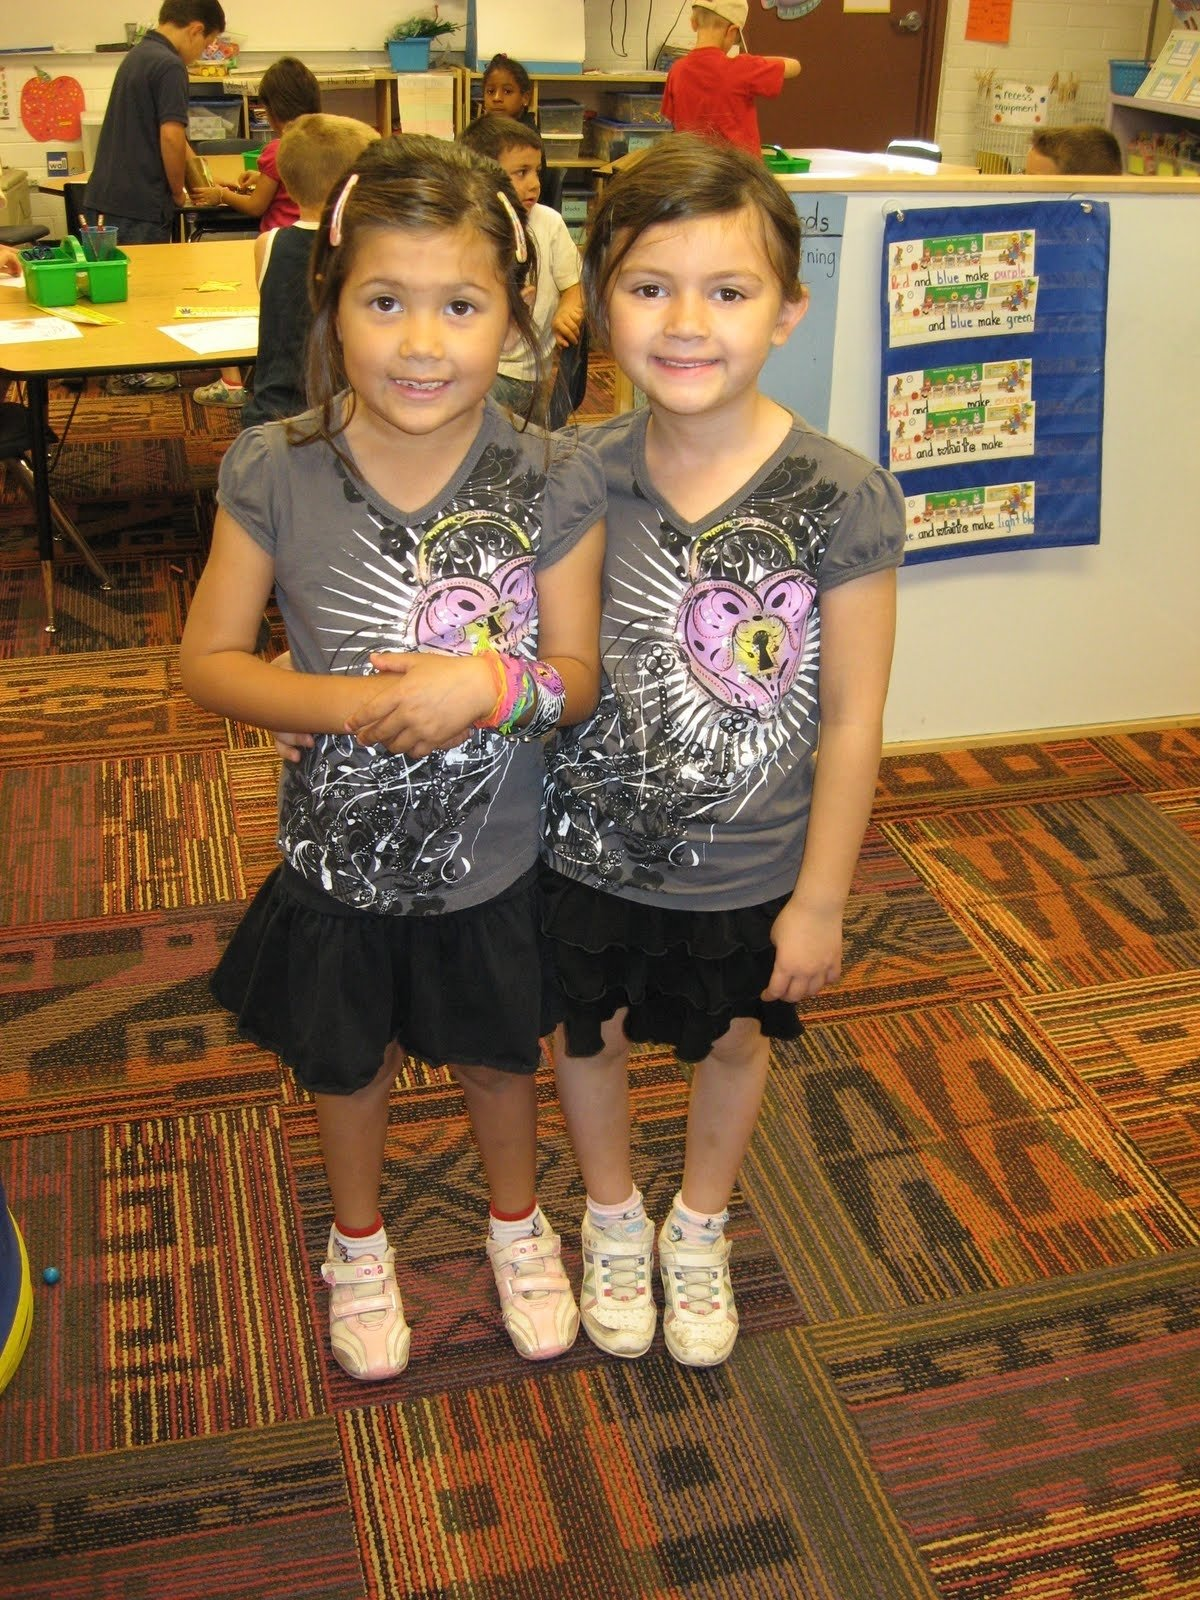 10 Best Spirit Week Twin Day Ideas pcs prek 8 kindergarten 2012 2013 twin triplet day and how awesome